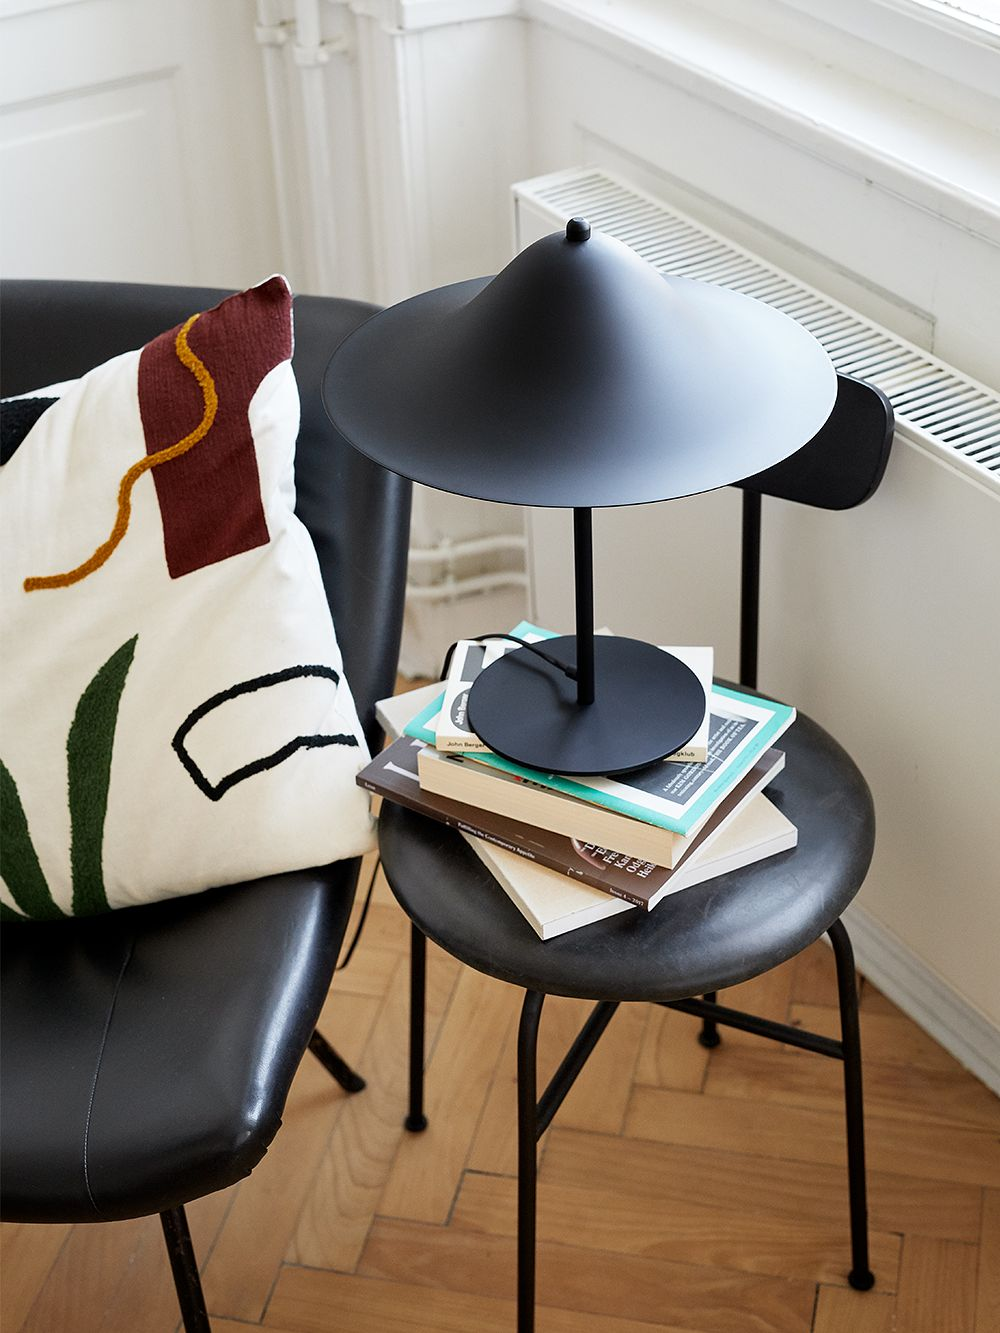 Hans table lamp by Pholc